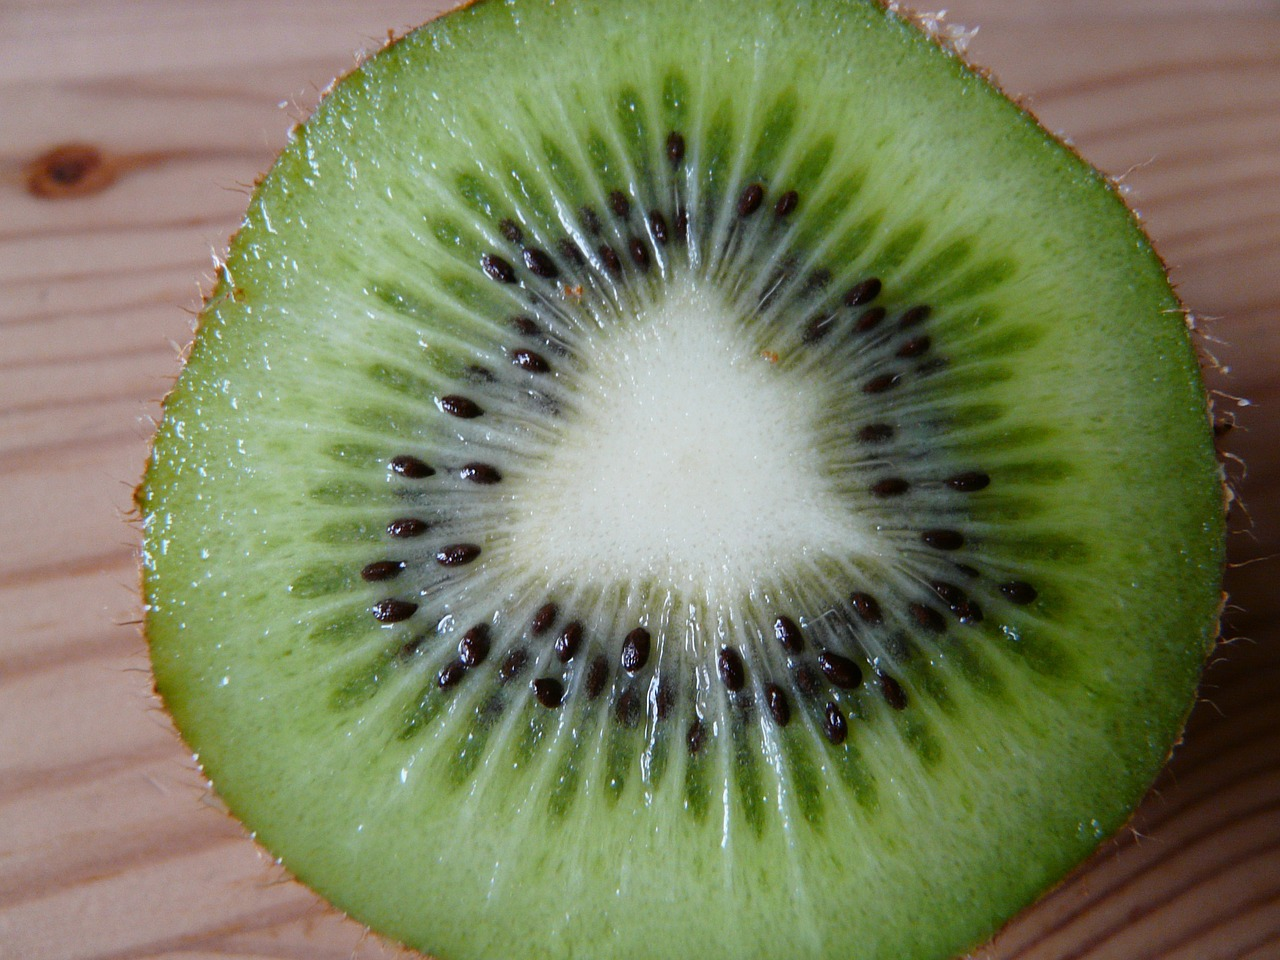 kiwi cut fruit free photo